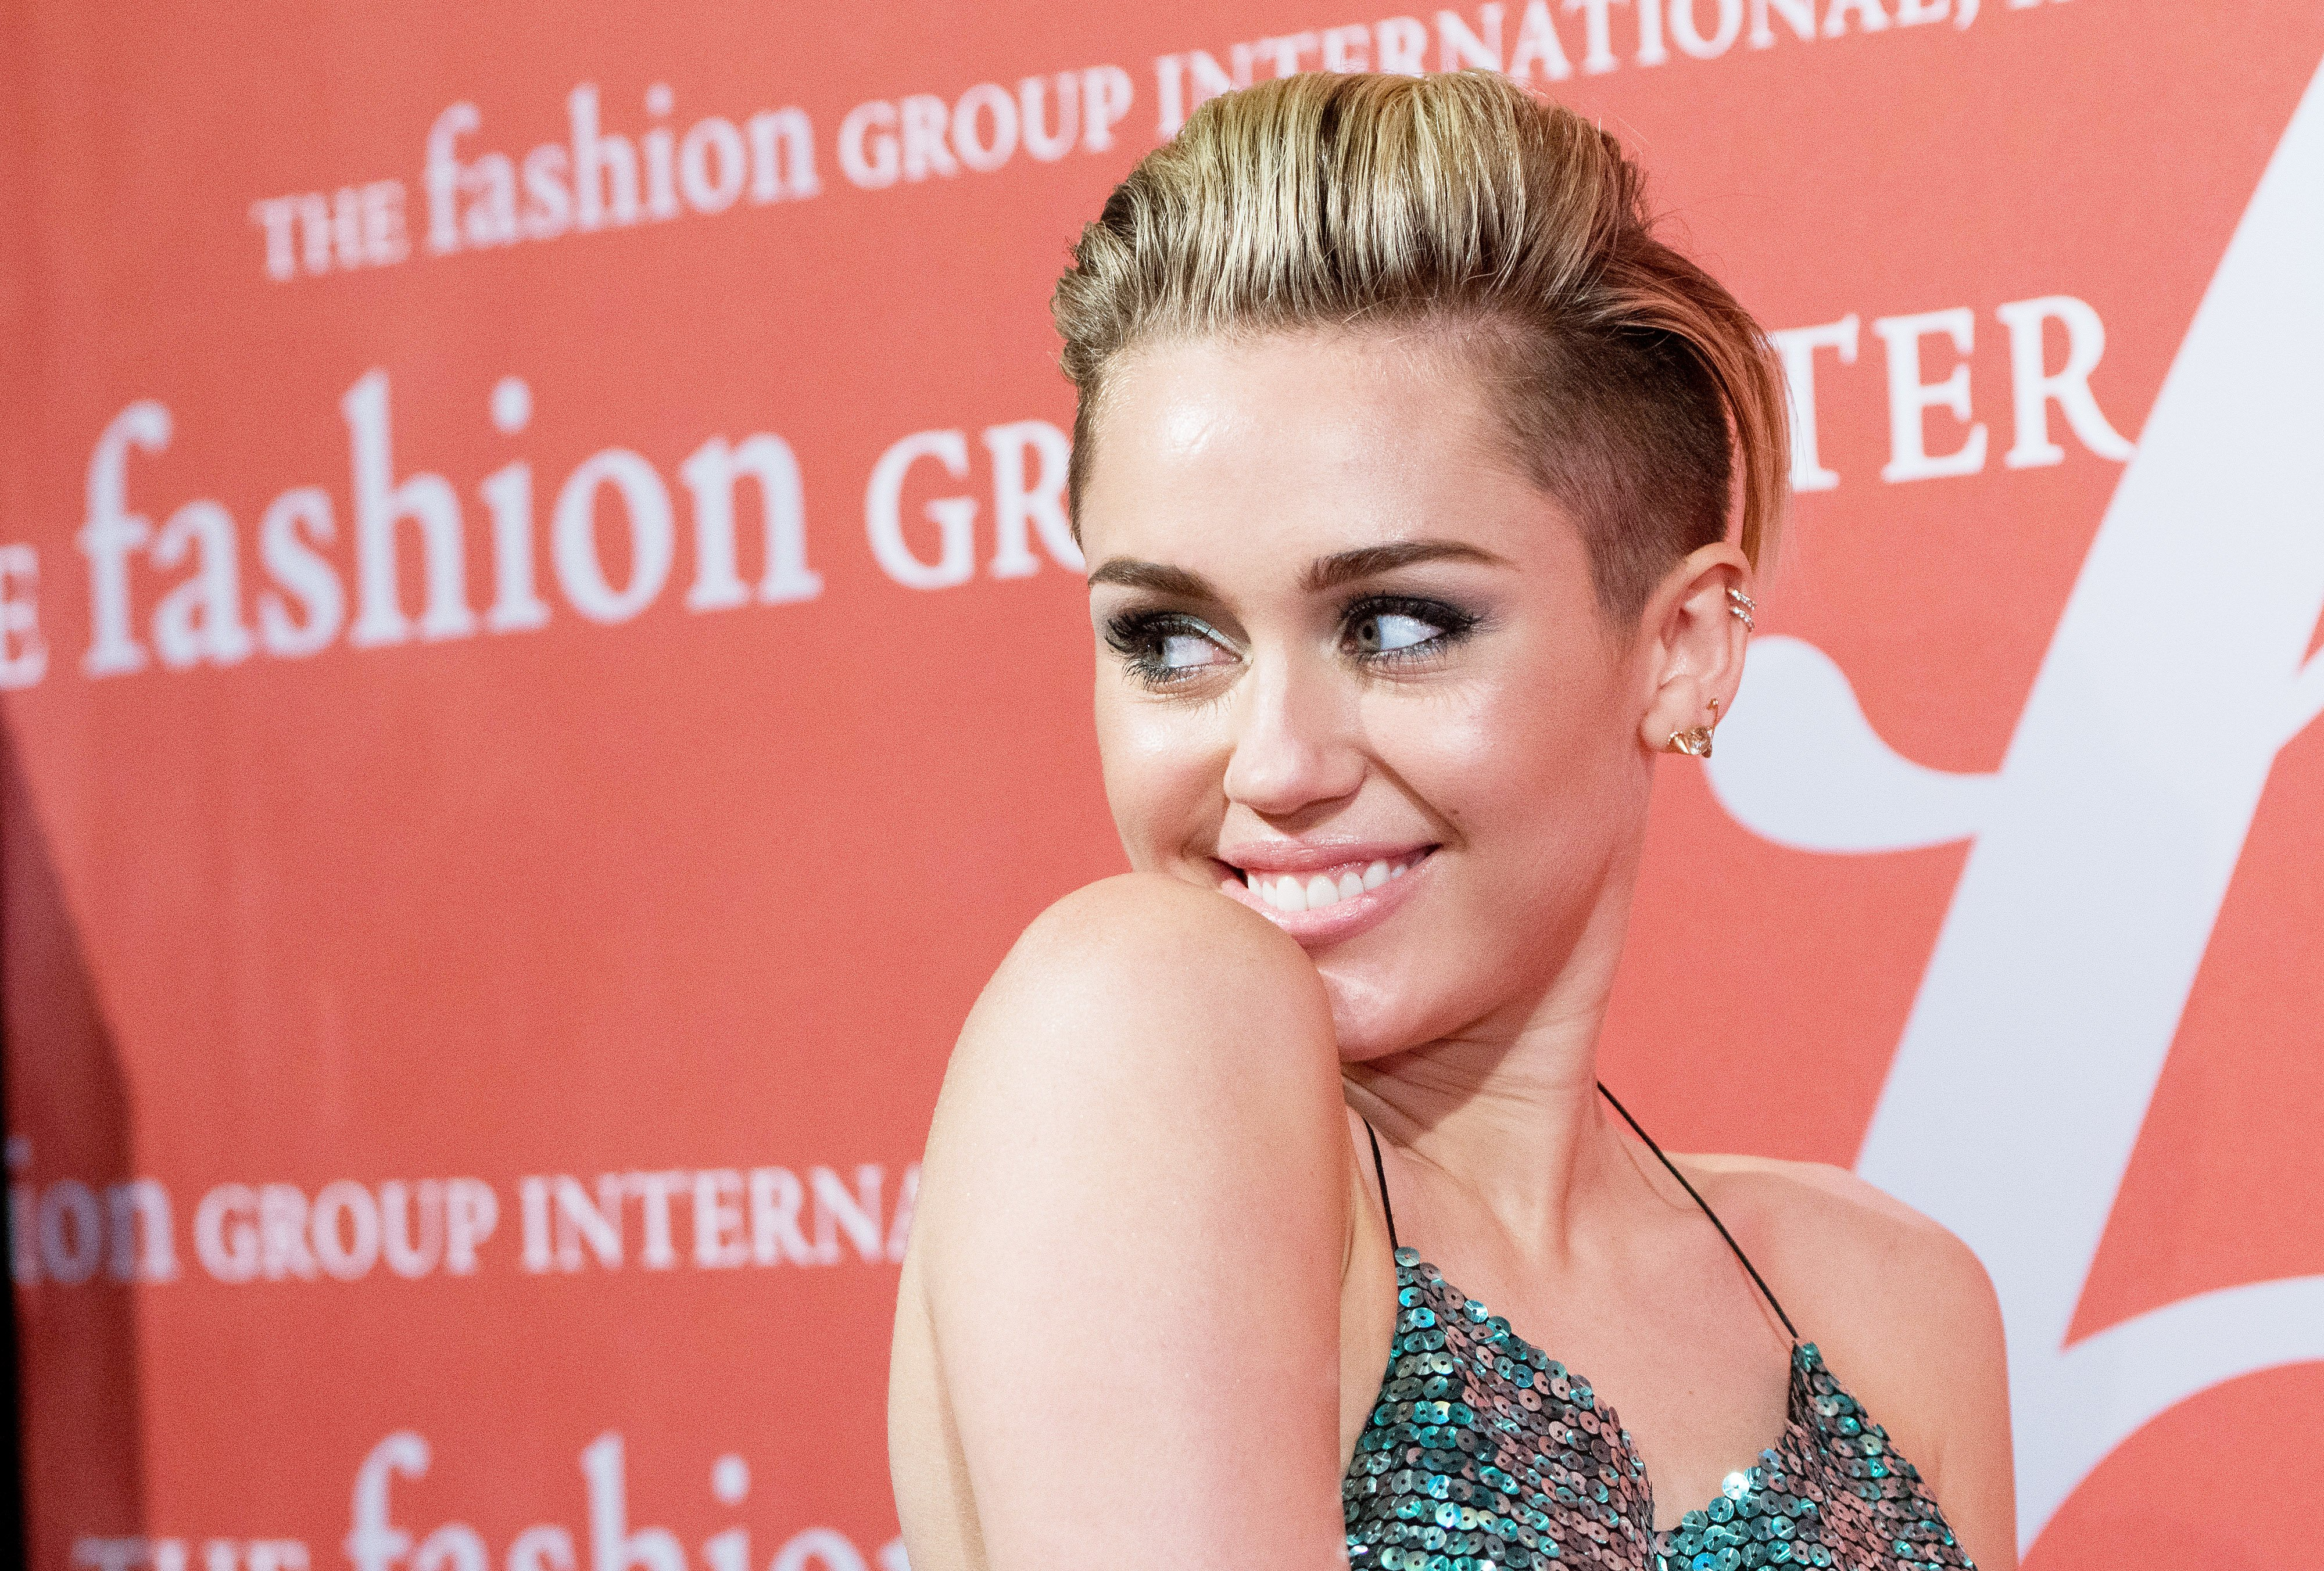 Image Source: Getty Images/Miley at a fashion event